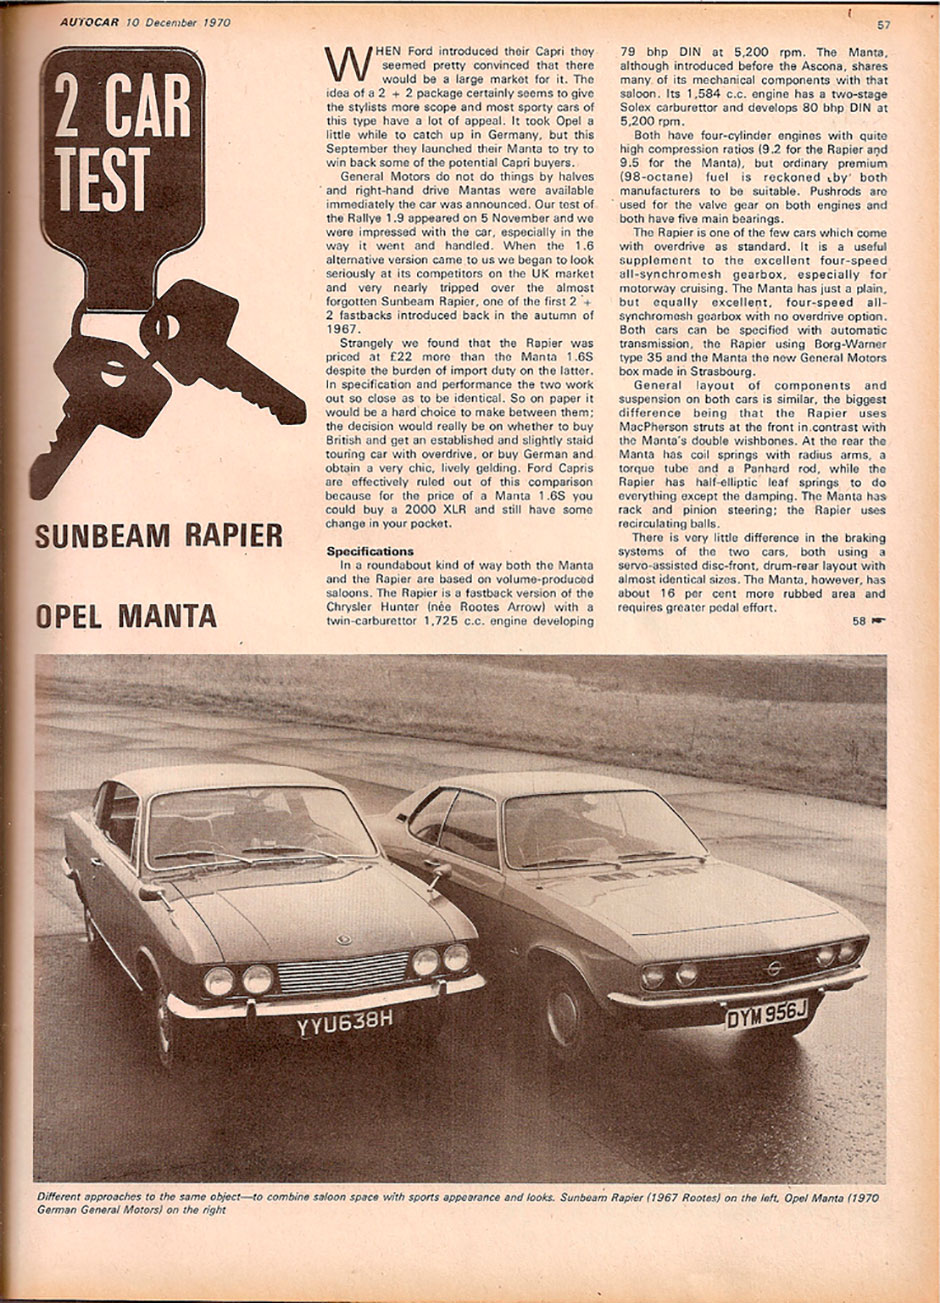 Opel Manta и Sunbeam Rapier